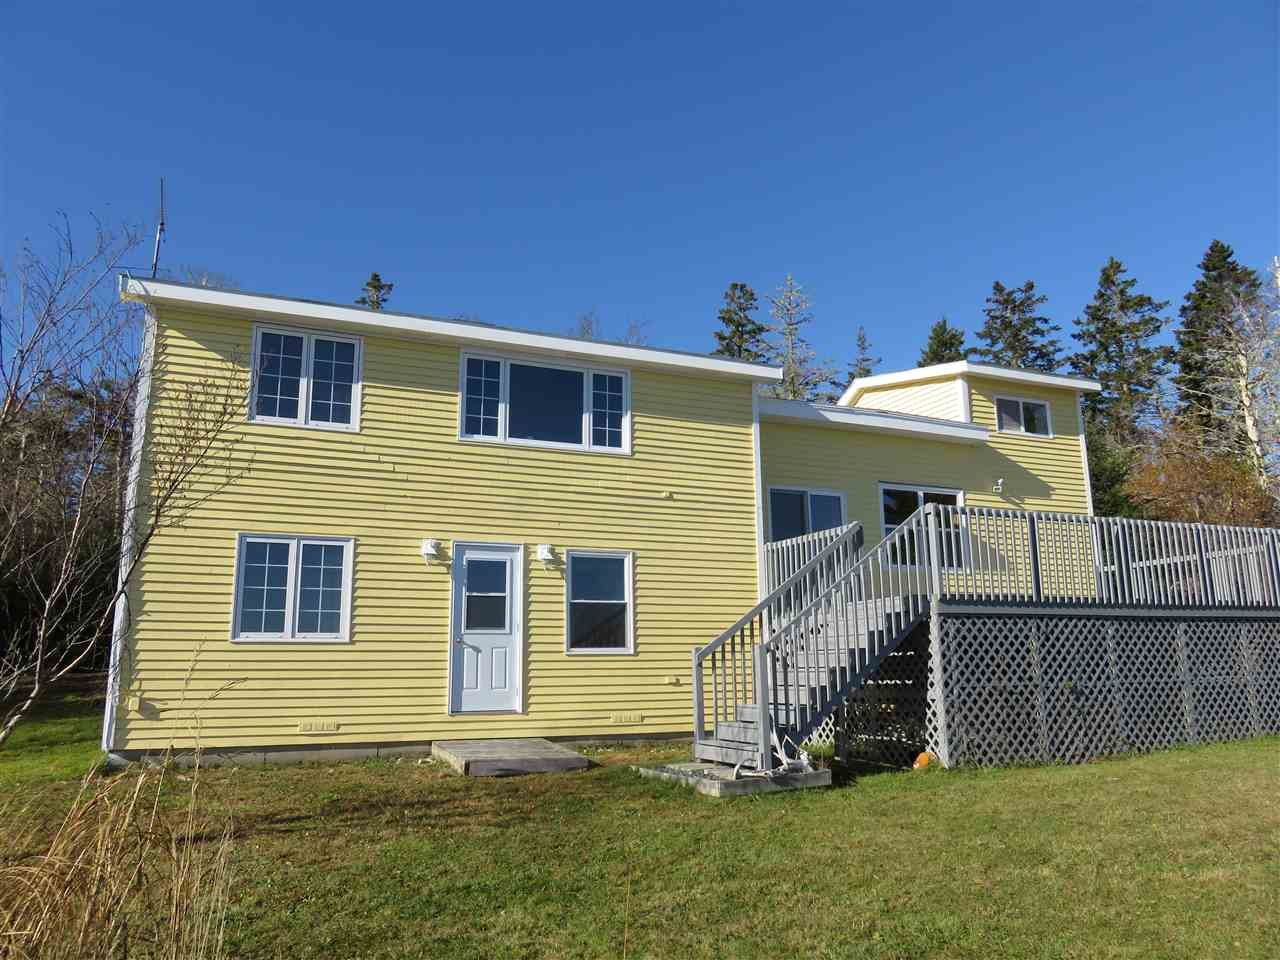 Photo 2: Photos: 783 WEST GREEN HARBOUR Road in West Green Harbour: 407-Shelburne County Residential for sale (South Shore)  : MLS® # 201701314